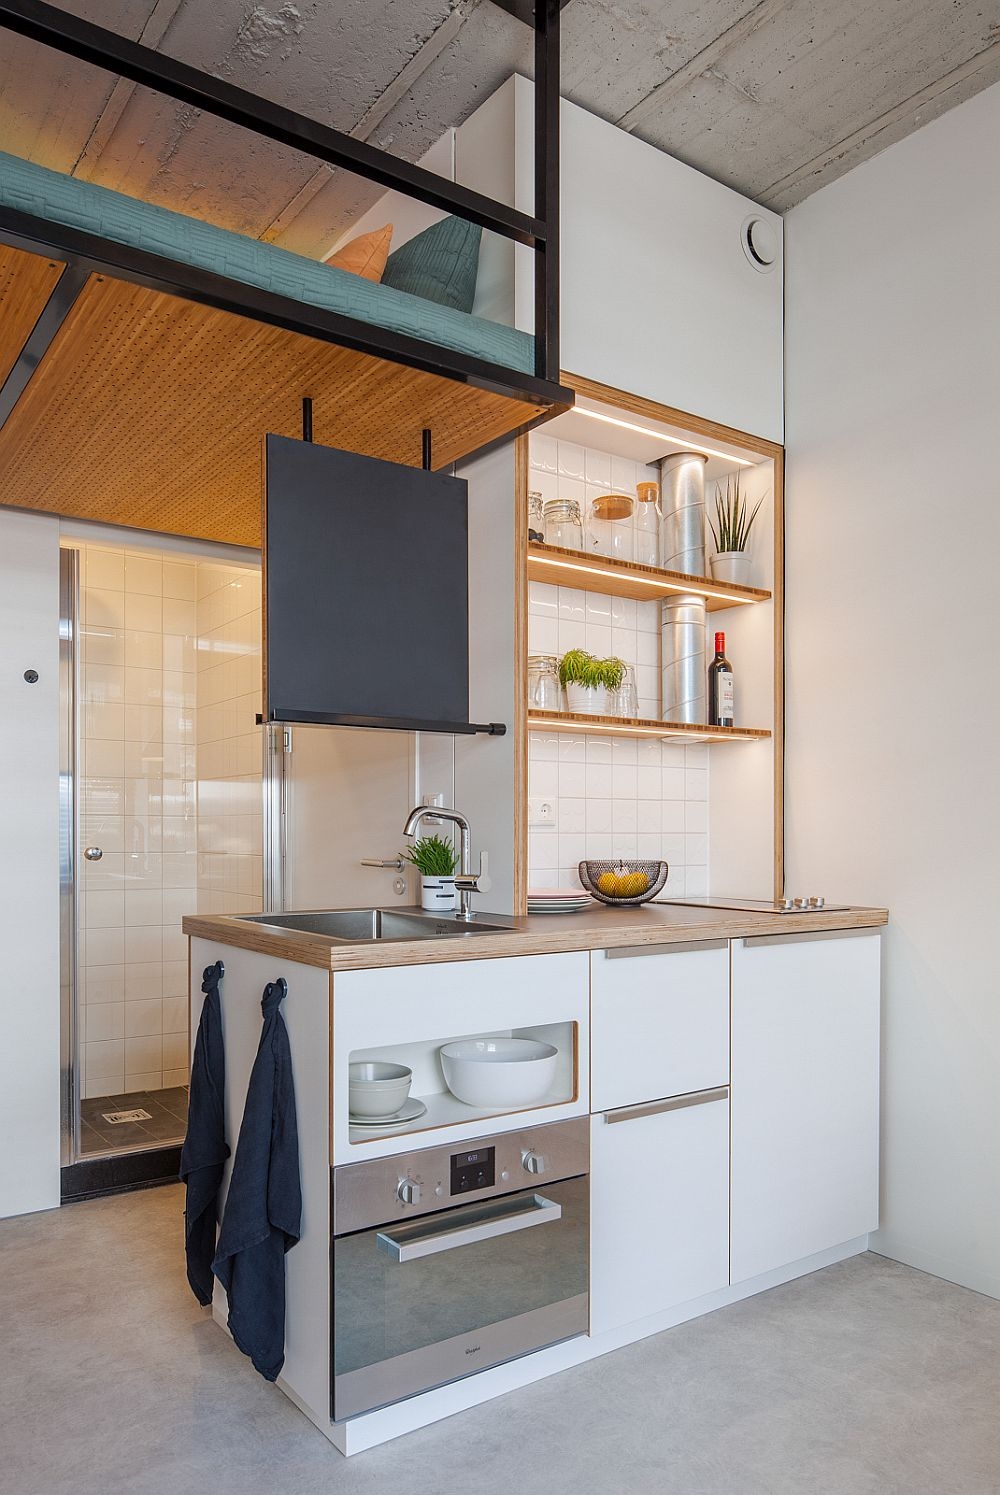 Ultra-tiny kitchen of the 18 square meter apartment is a master space-saver!